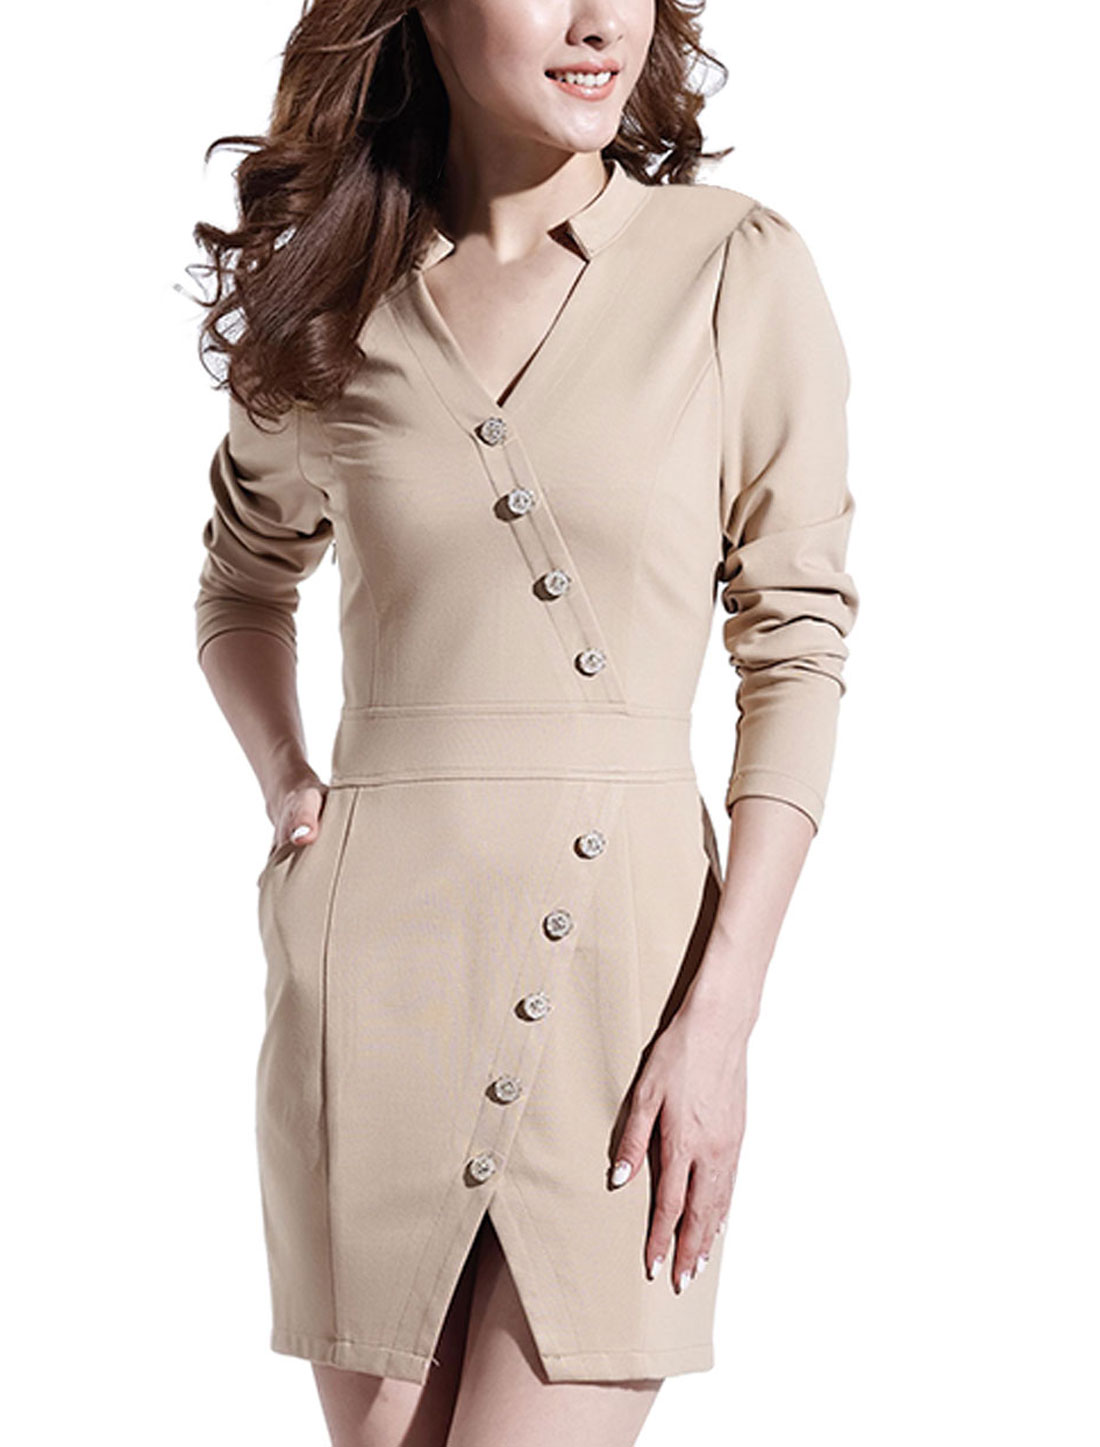 Women Double Pockets Front Mandarin Collar Sheath Dress Beige L